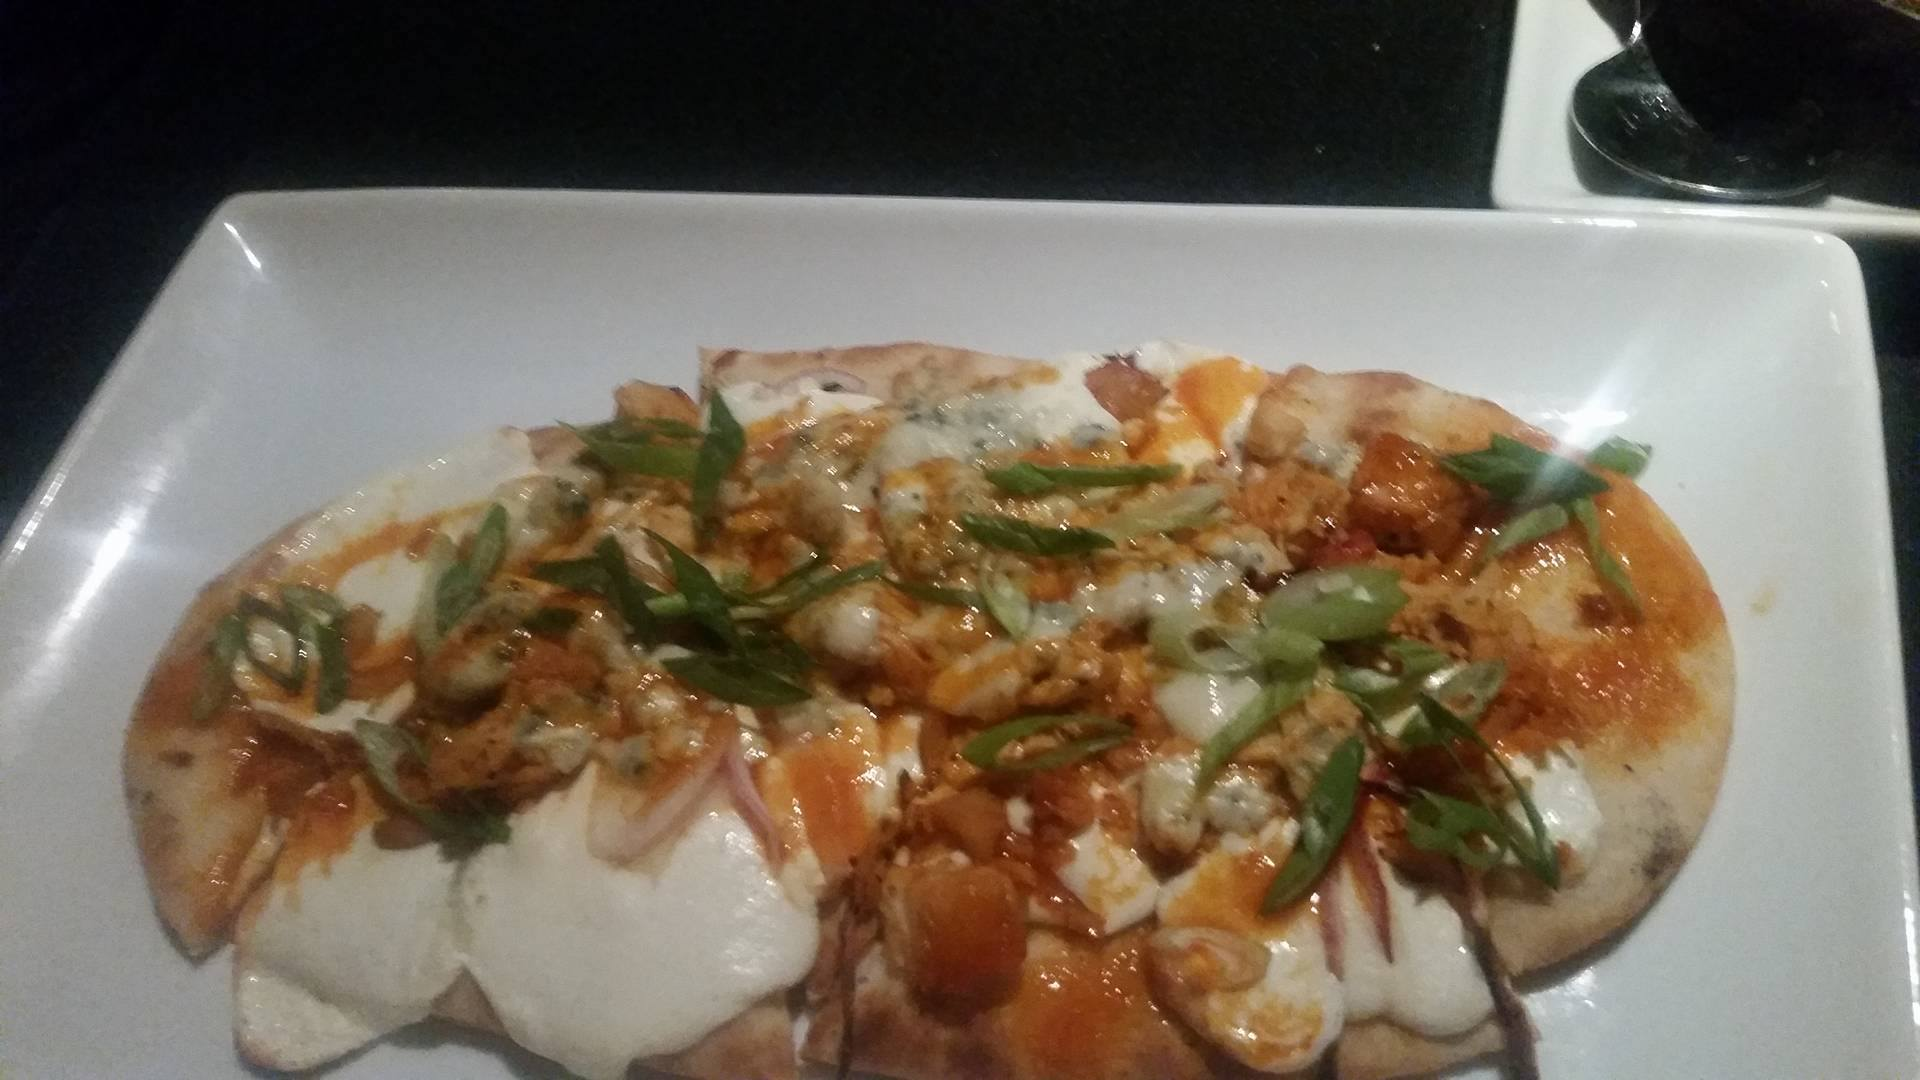 My buffalo chicken naan flatbread. Just the right balance of creamy and spicy.